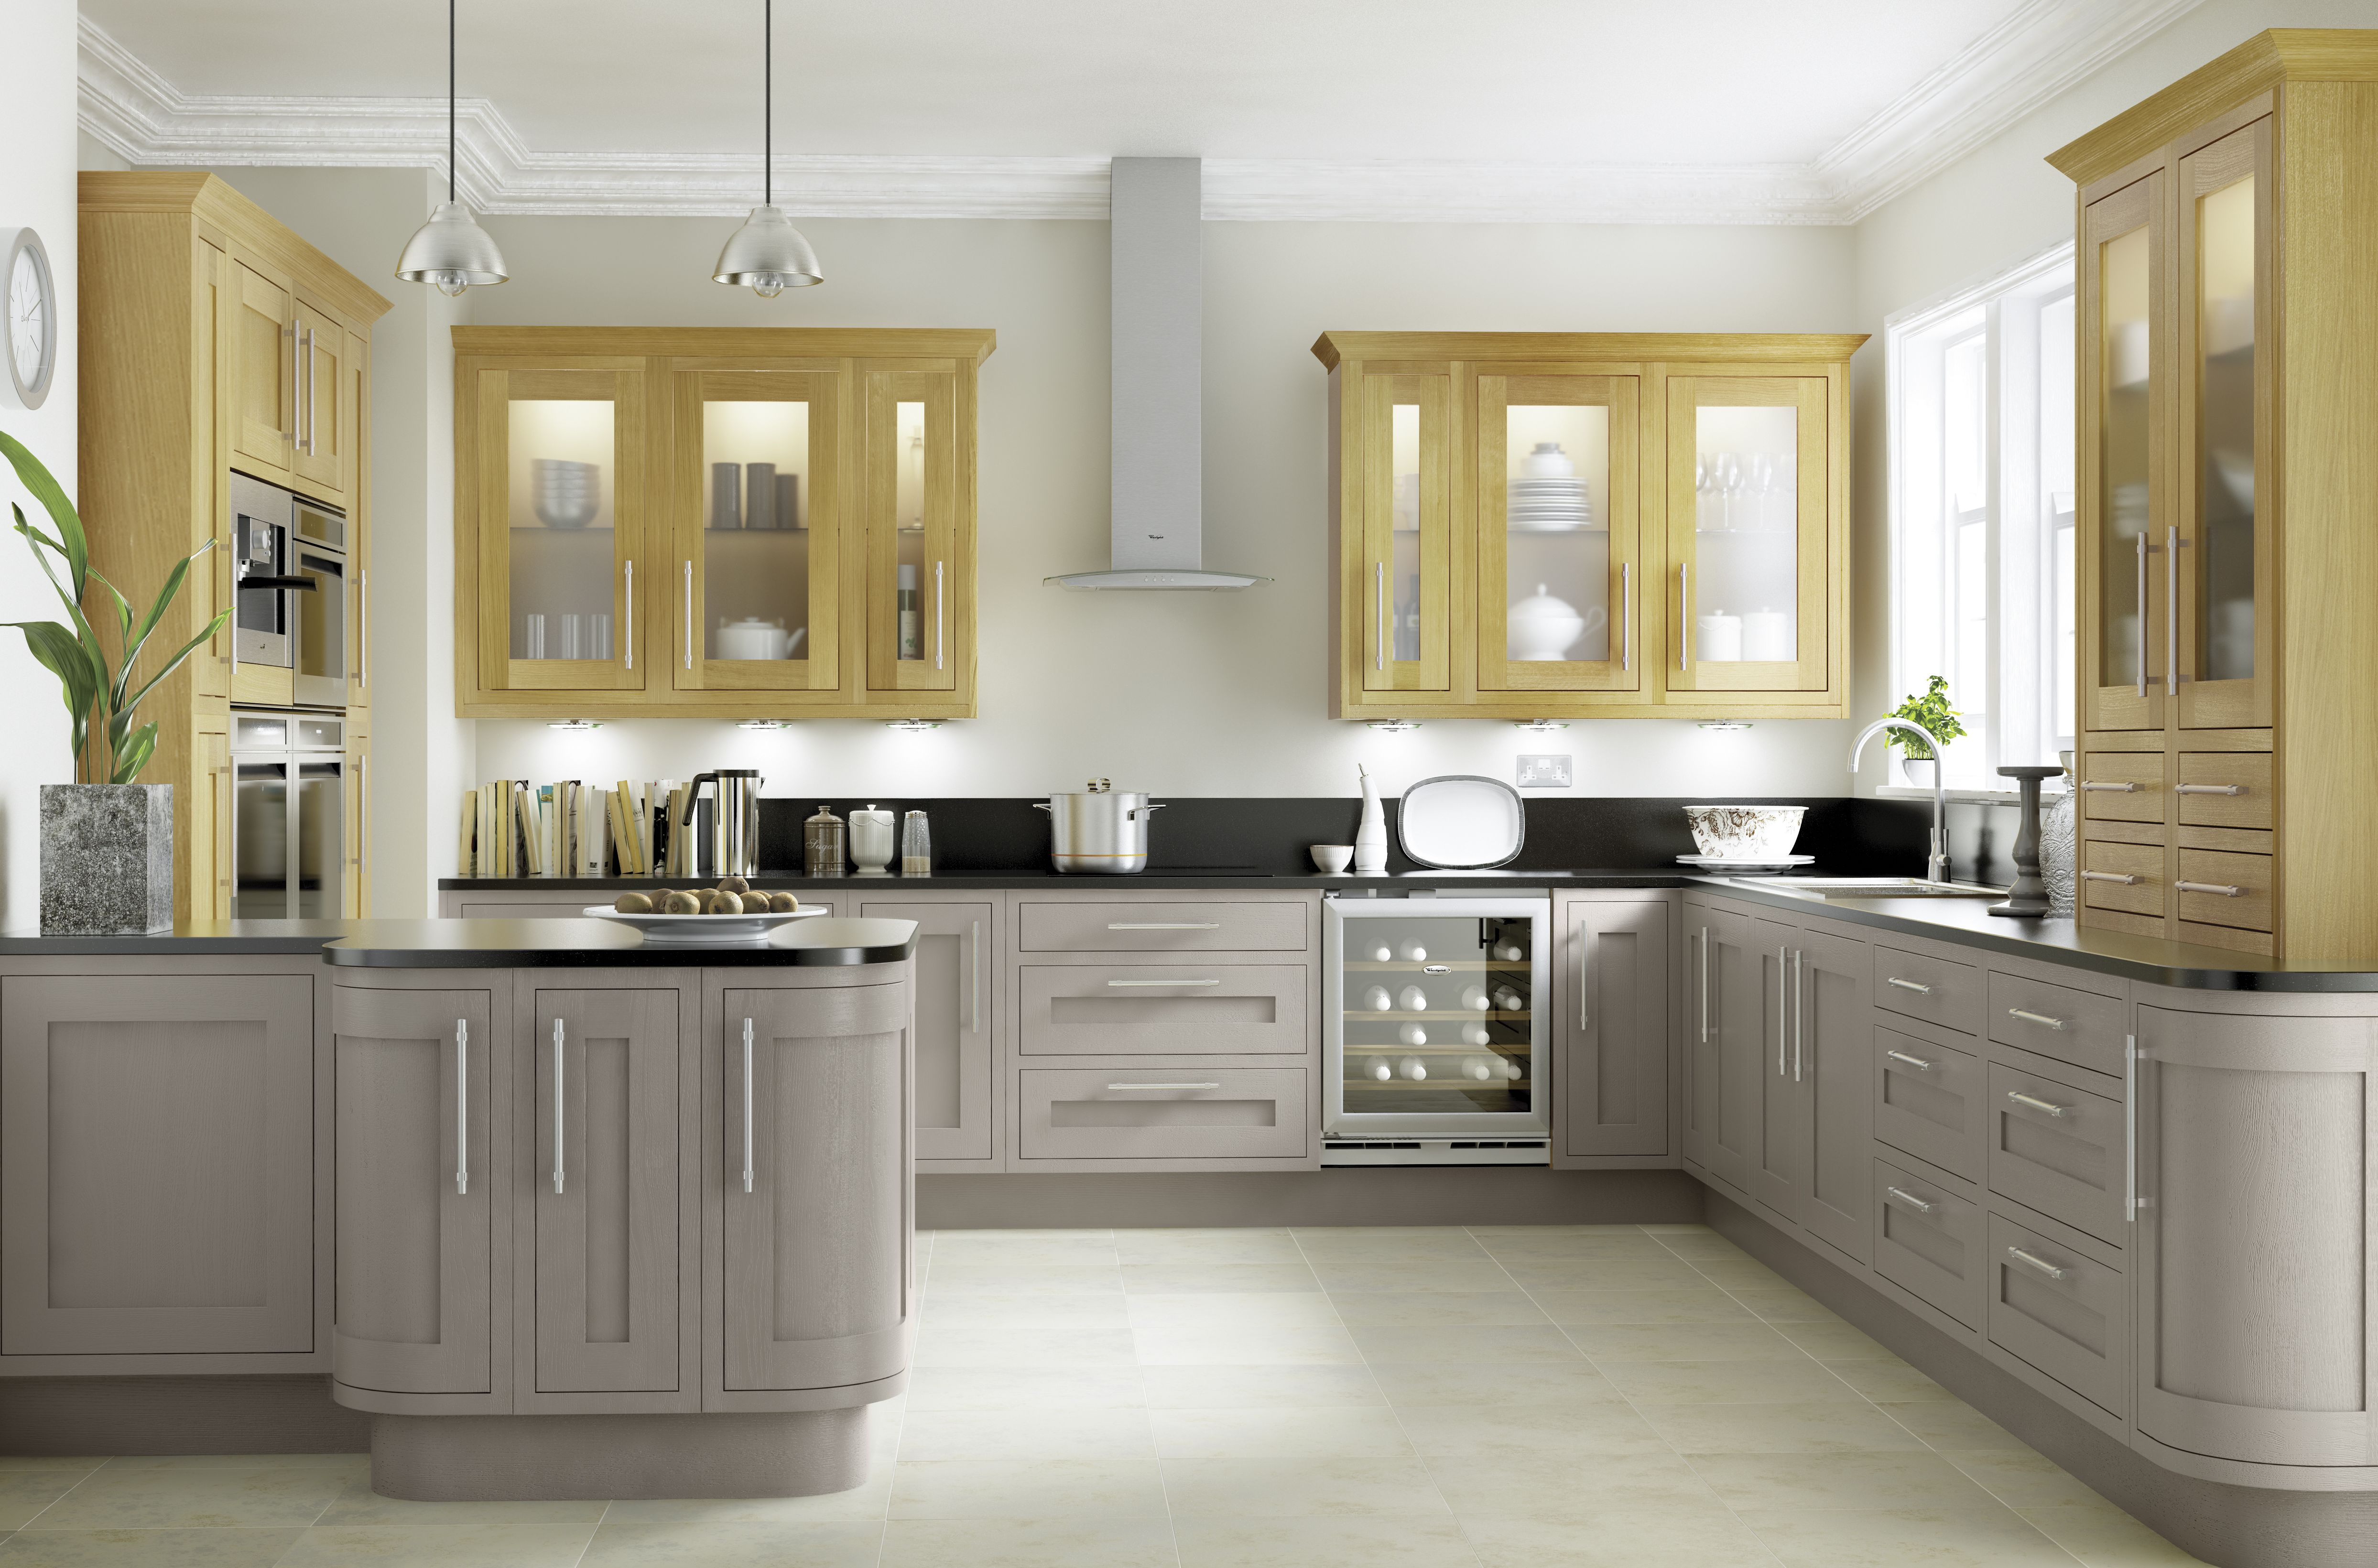 cabinet: cooke and lewis kitchen cabinets Cooke And Lewis Kitchen ...